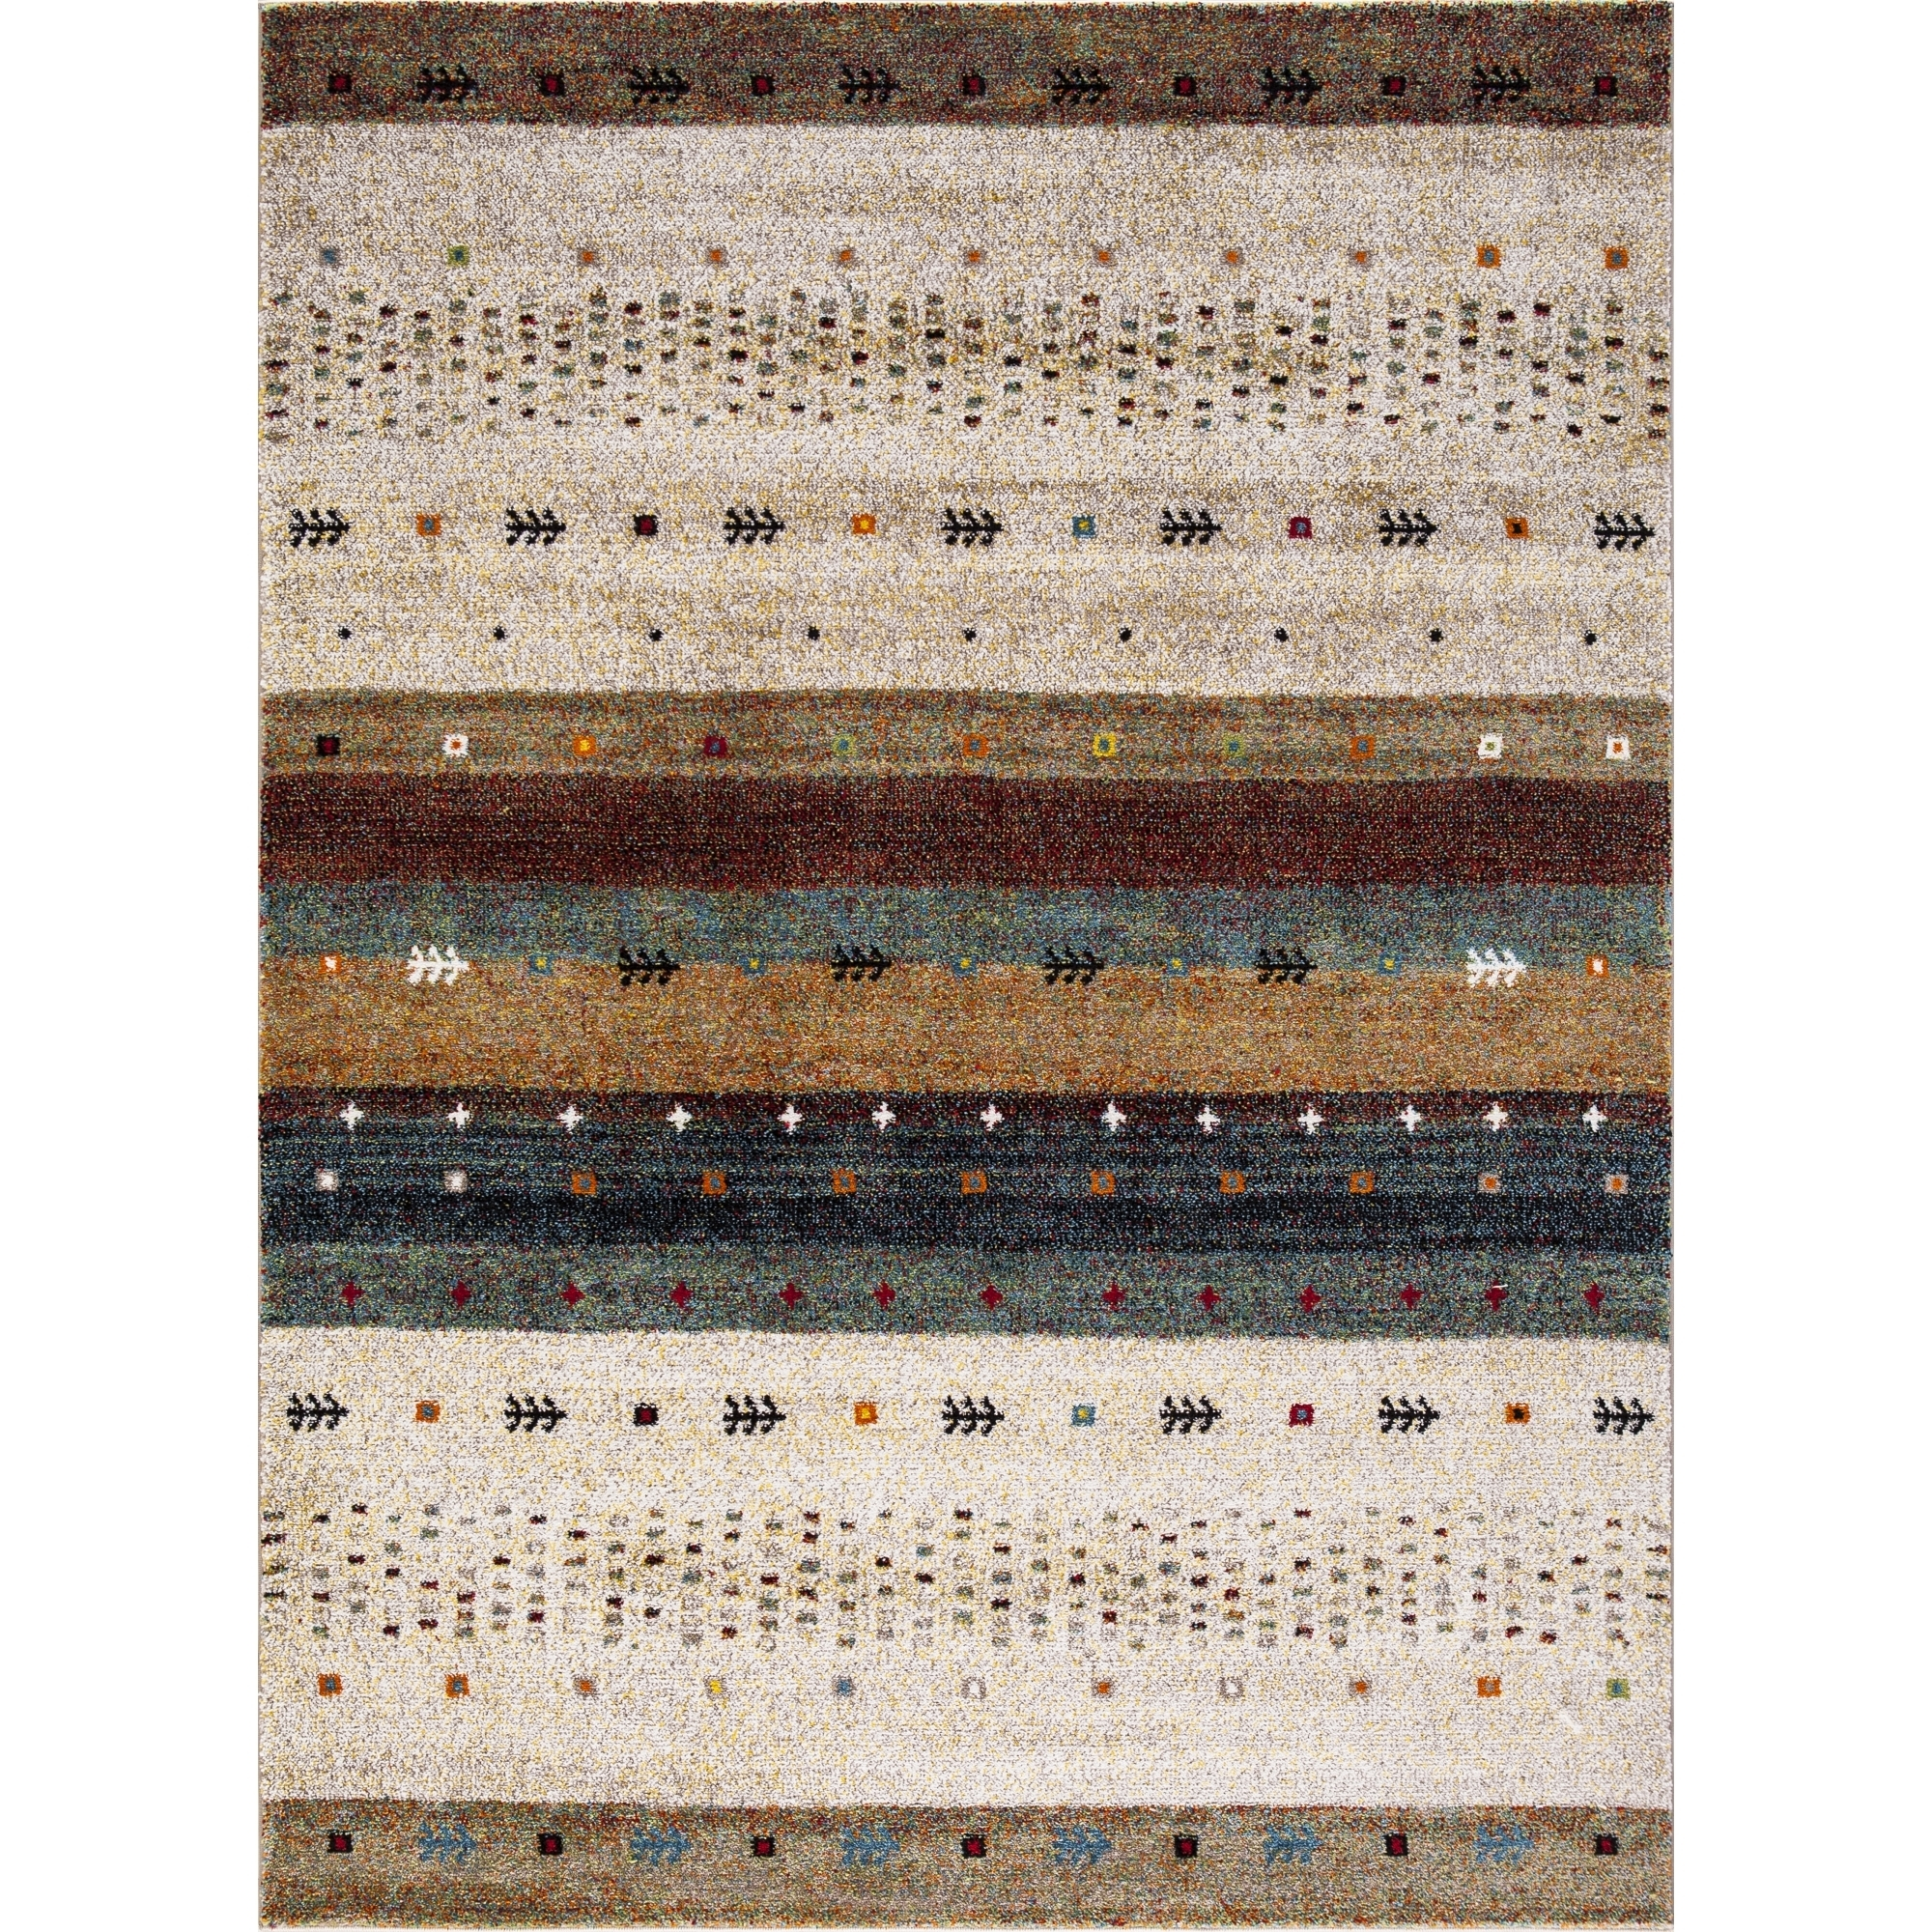 Concord Global Trading Diamond Collections Gabbeh Area Rug by Concord Global